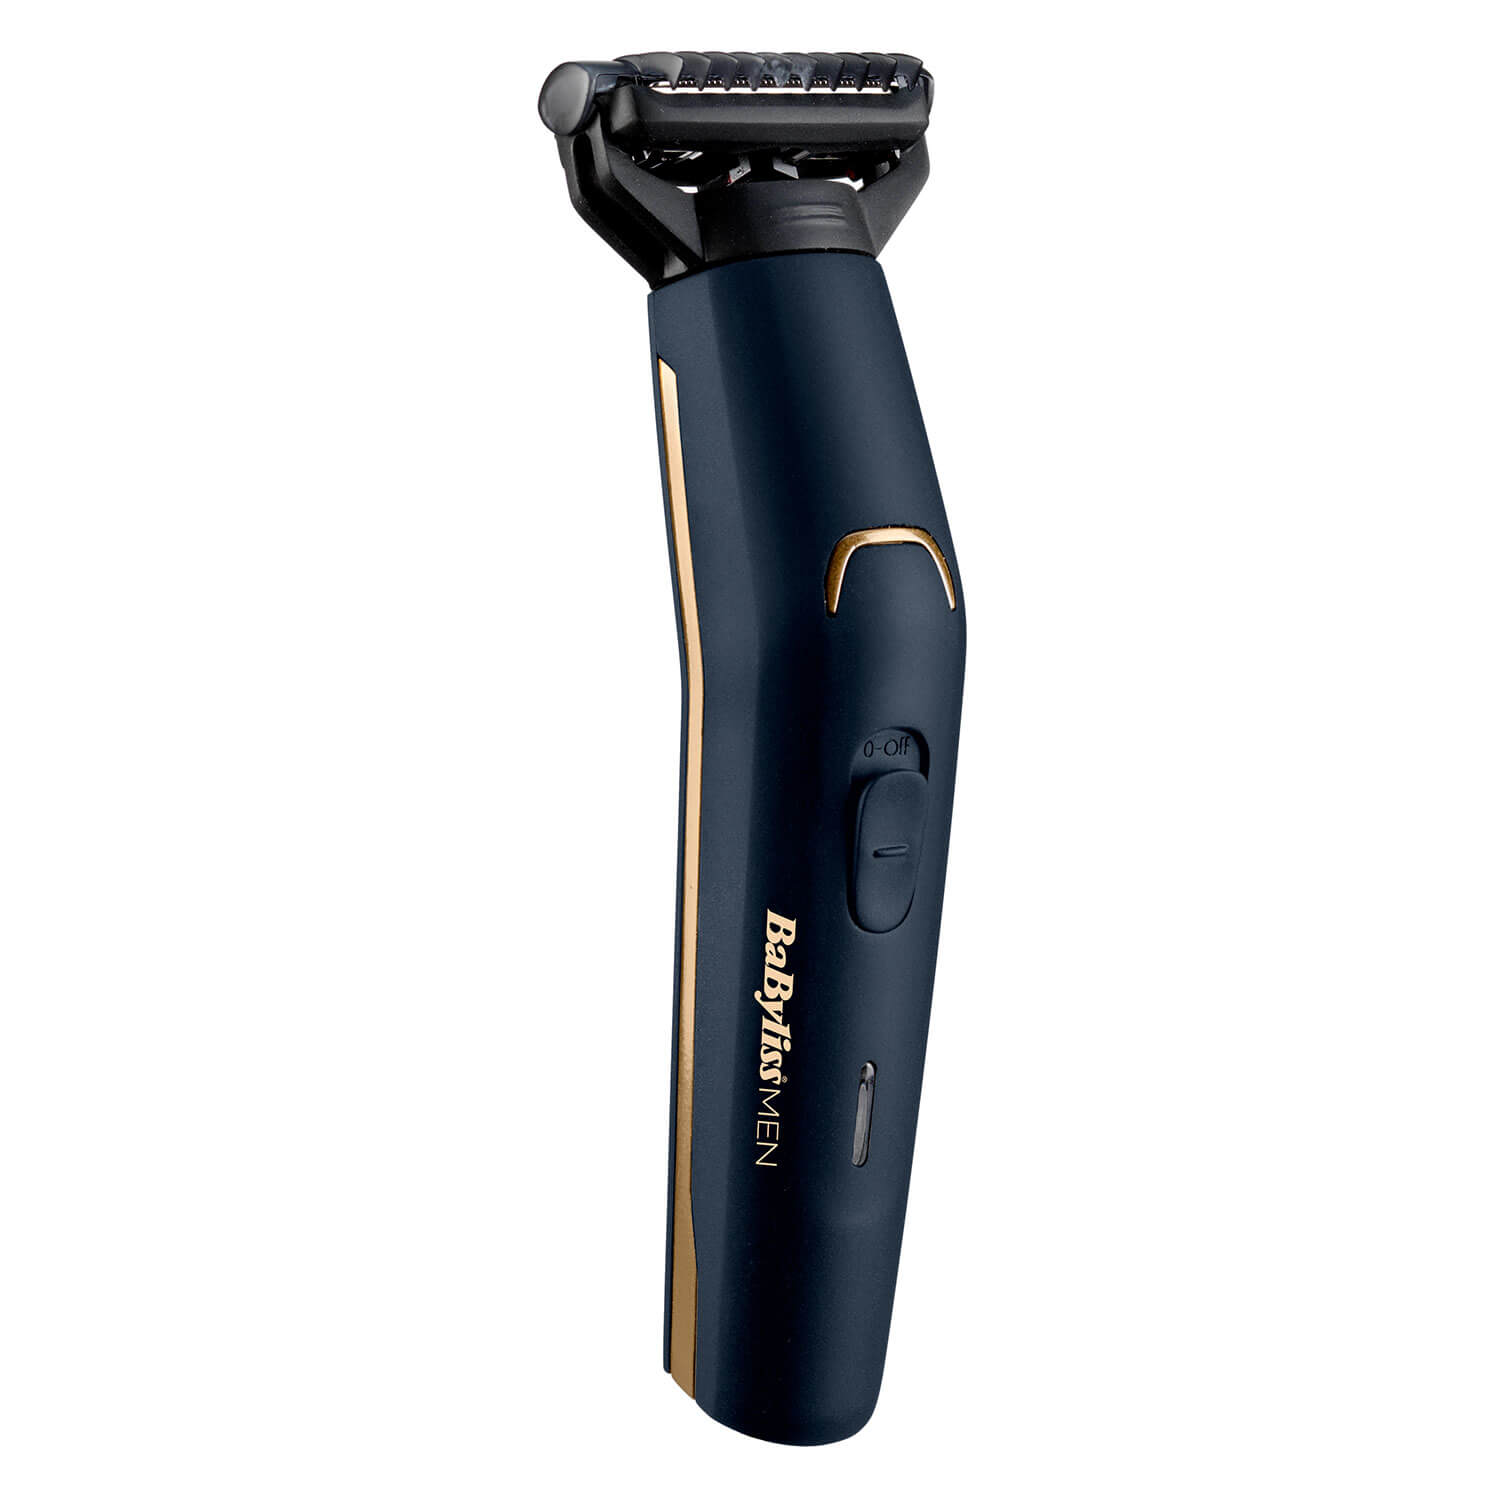 BaByliss MEN - Body Trimmer BG120E